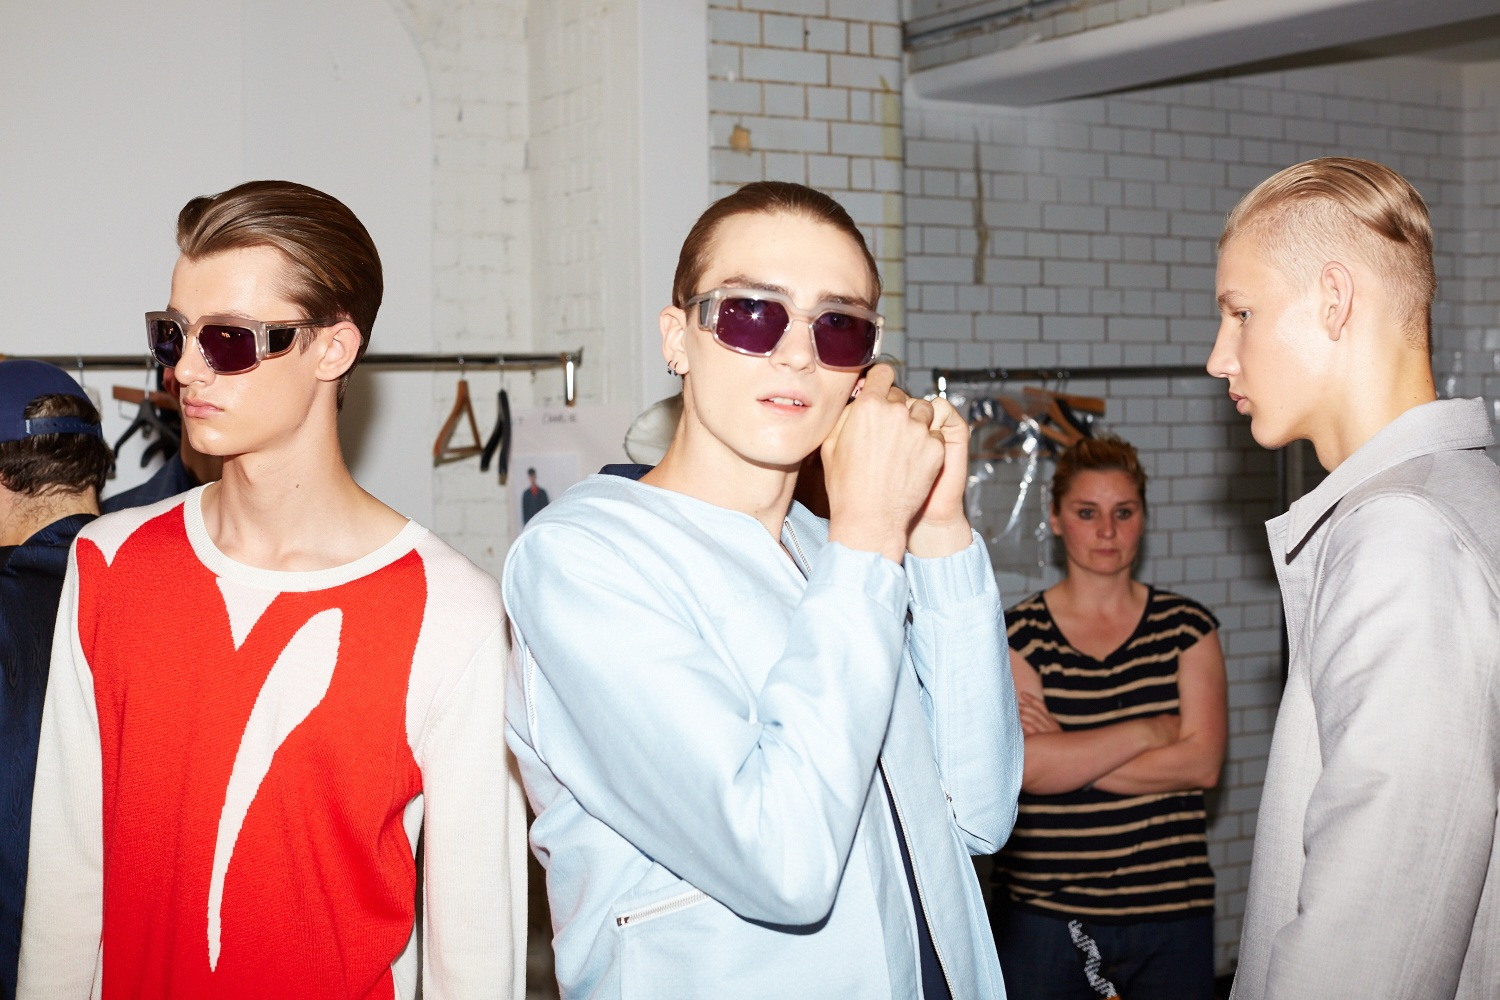 HERO MAGAZINE SS15 LONDON CATWALK LOU DALTON BACKSTAGE JAMES NAYLOR 4T8A1057